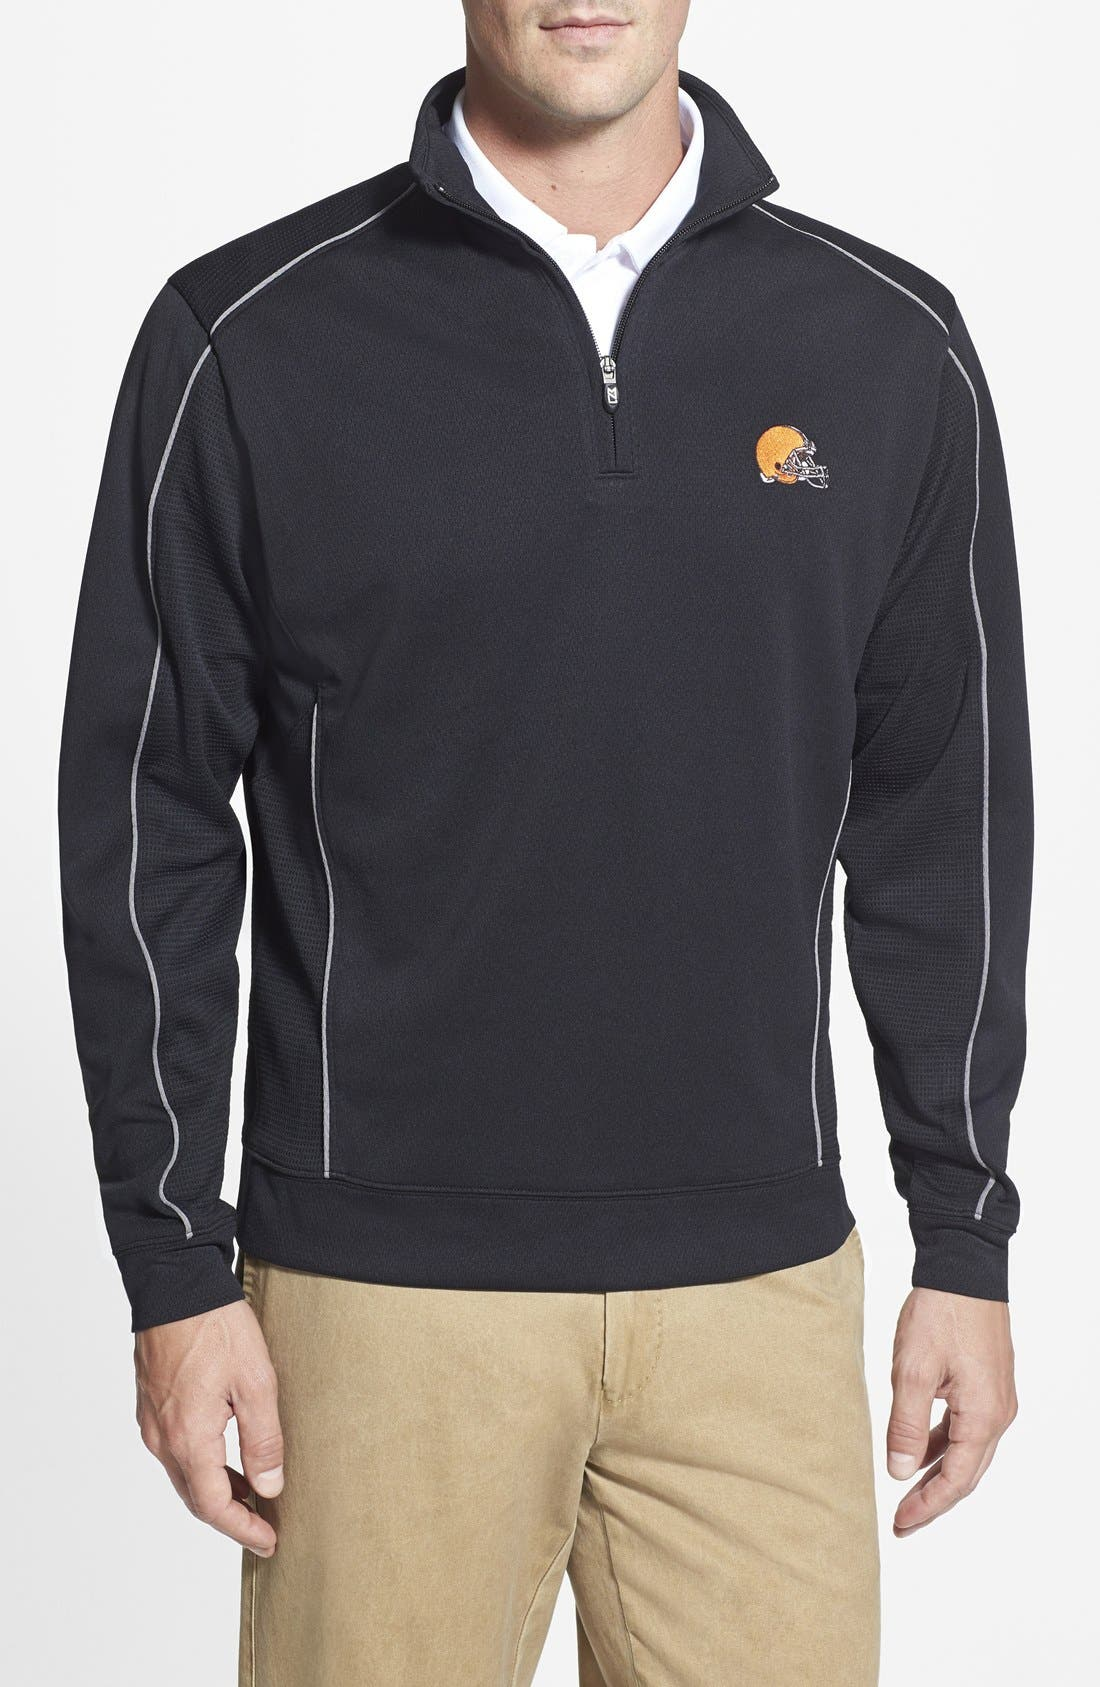 Cleveland Browns - Edge DryTec Moisture Wicking Half Zip Pullover,                         Main,                         color, Black